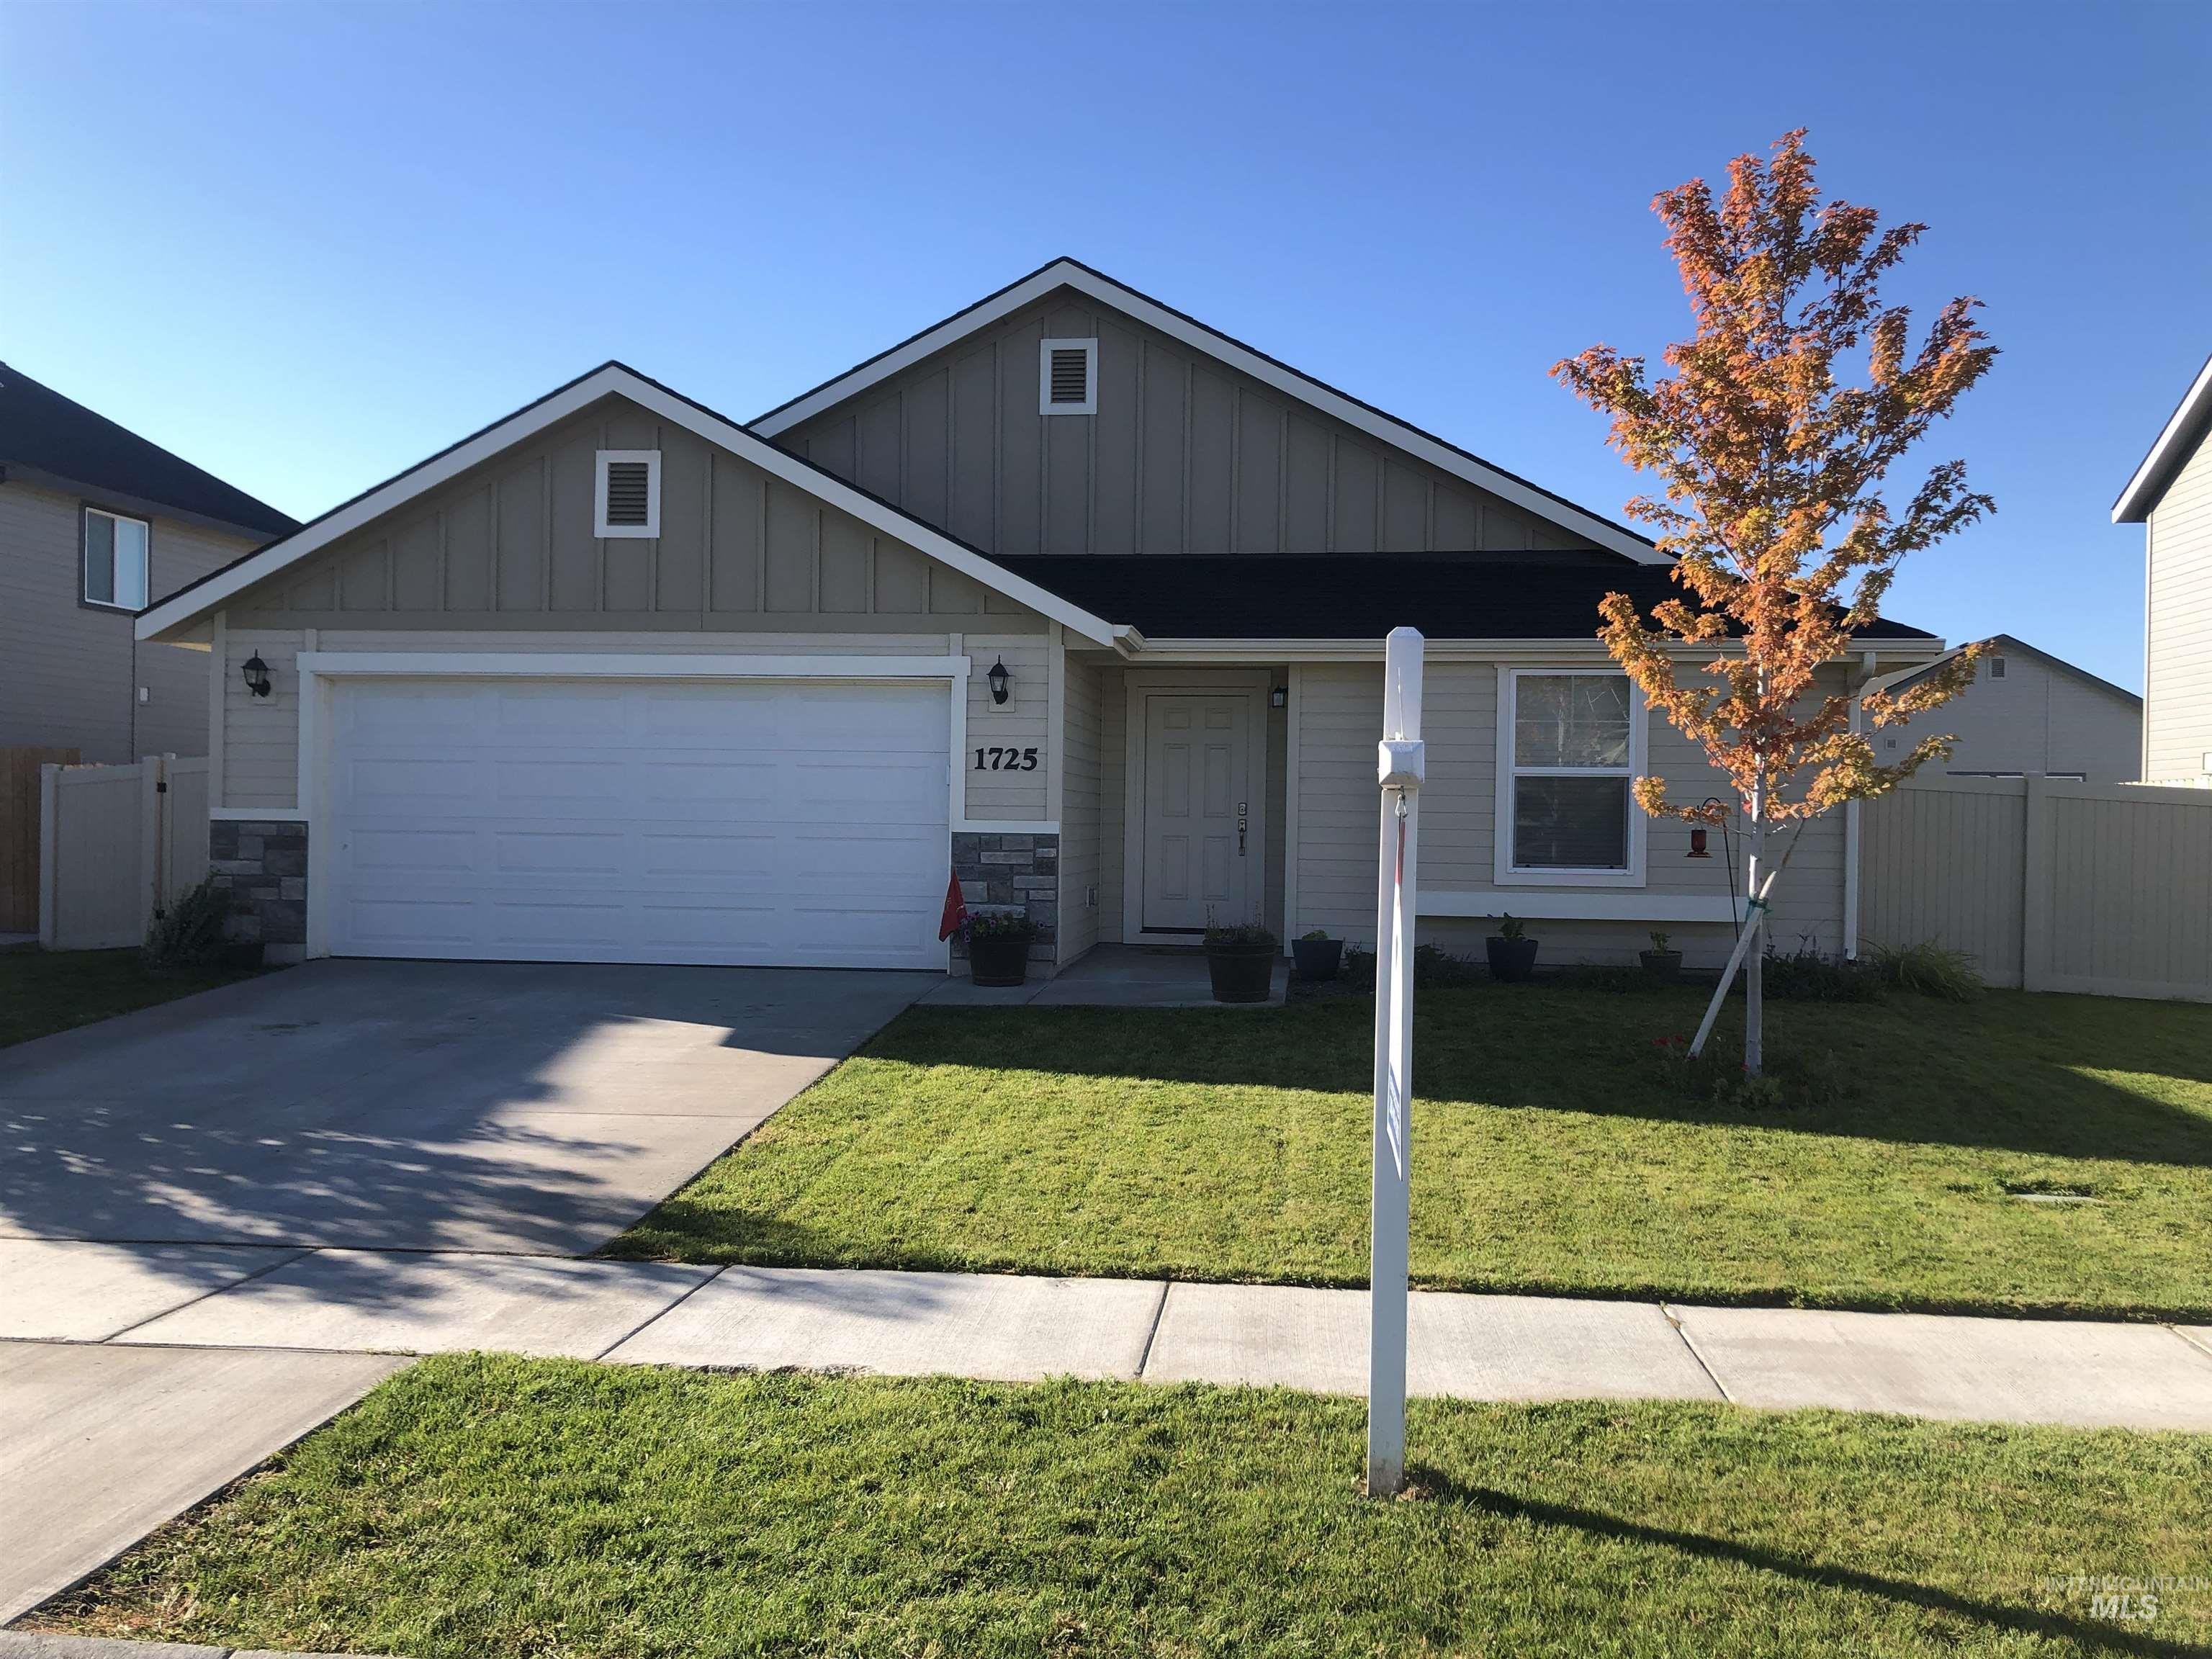 Photo of 1725 W Crystal Falls Ave. Nampa ID 83651